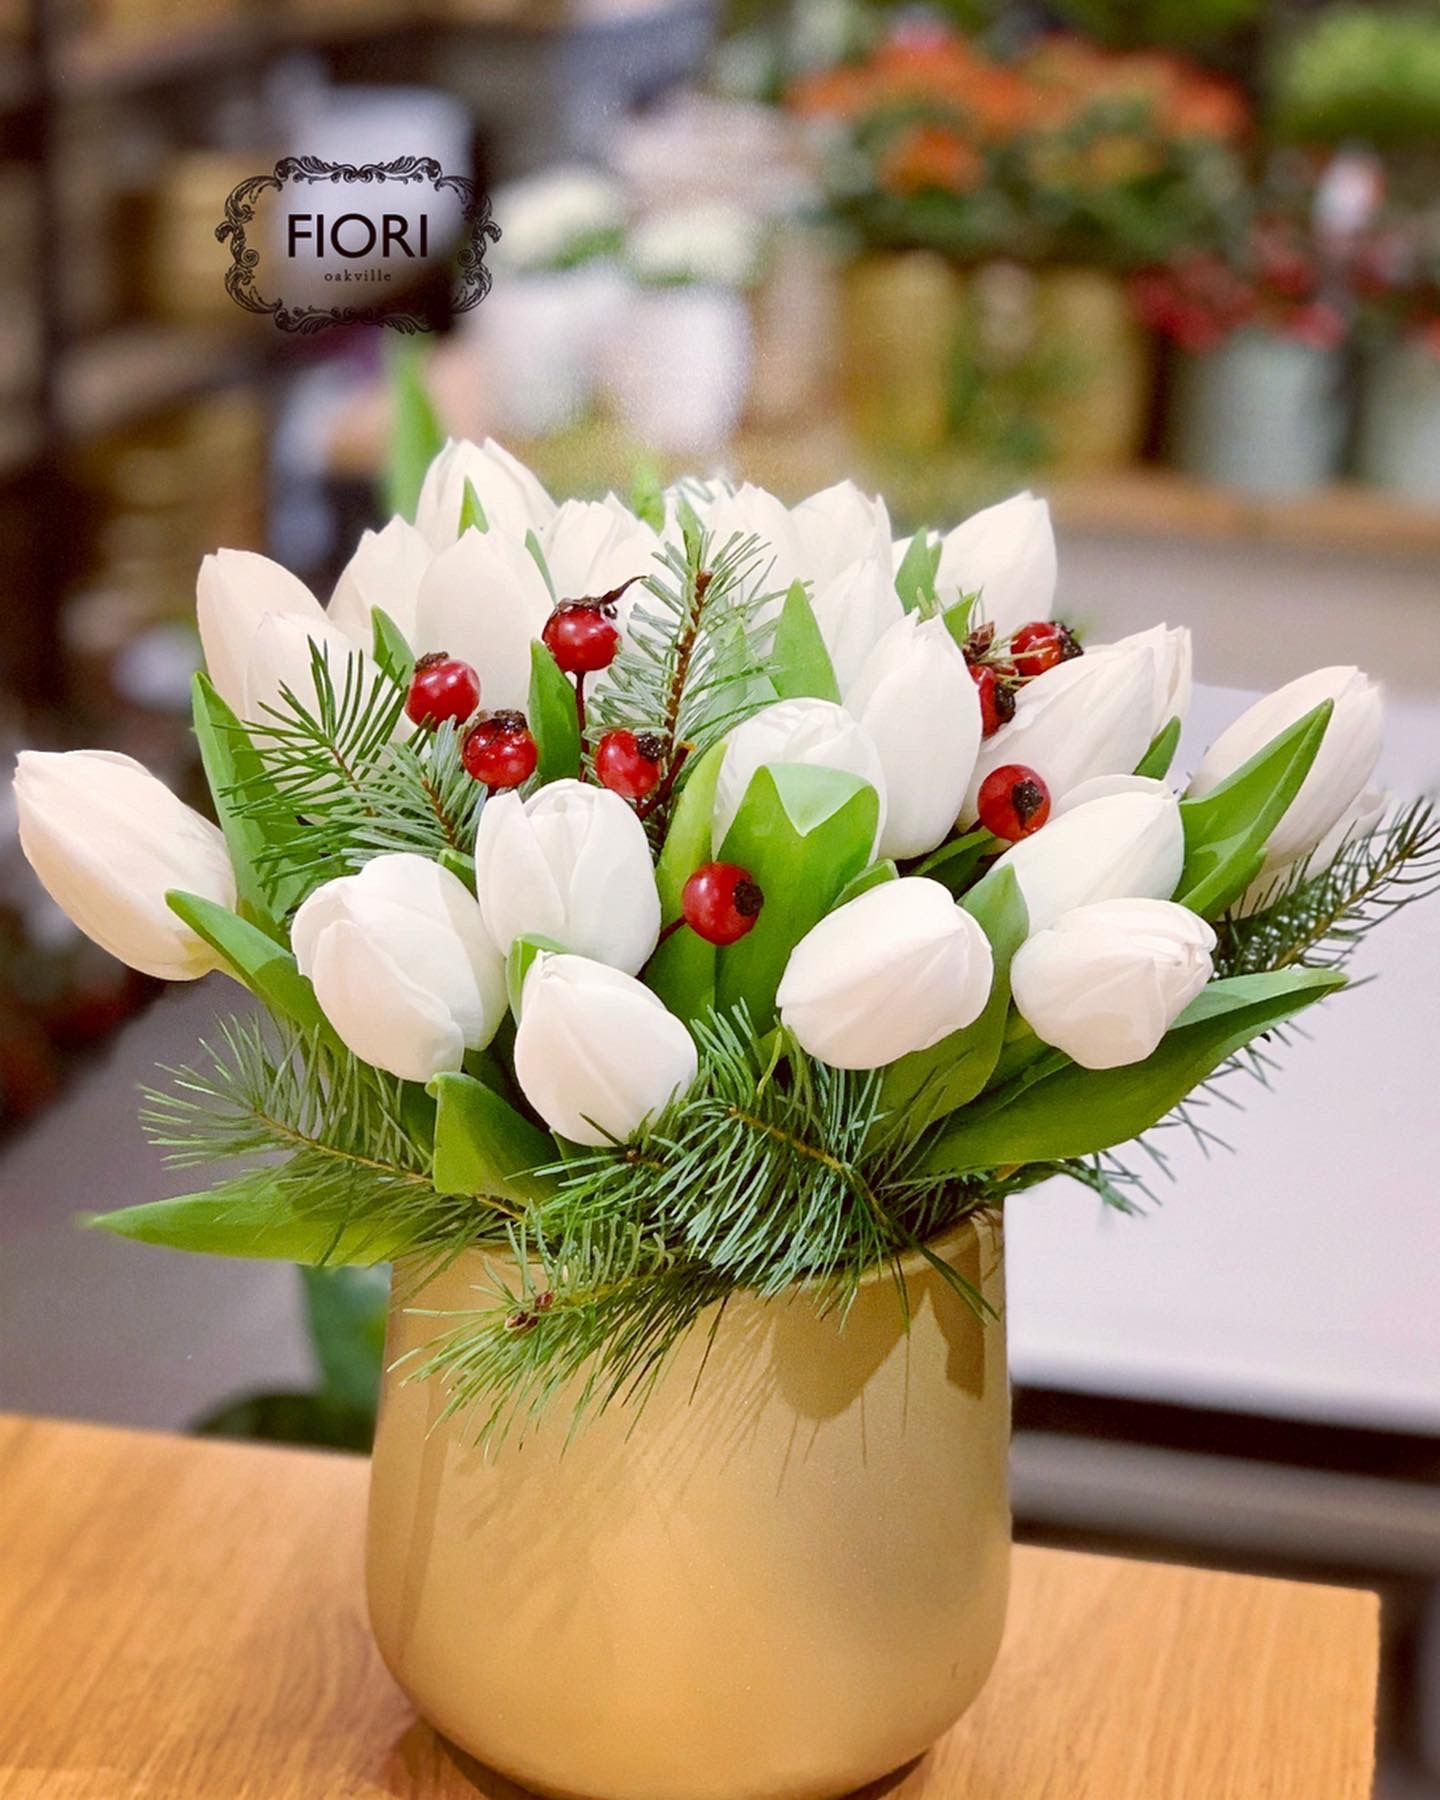 Contemporary and elegant this flower arrangement offers an